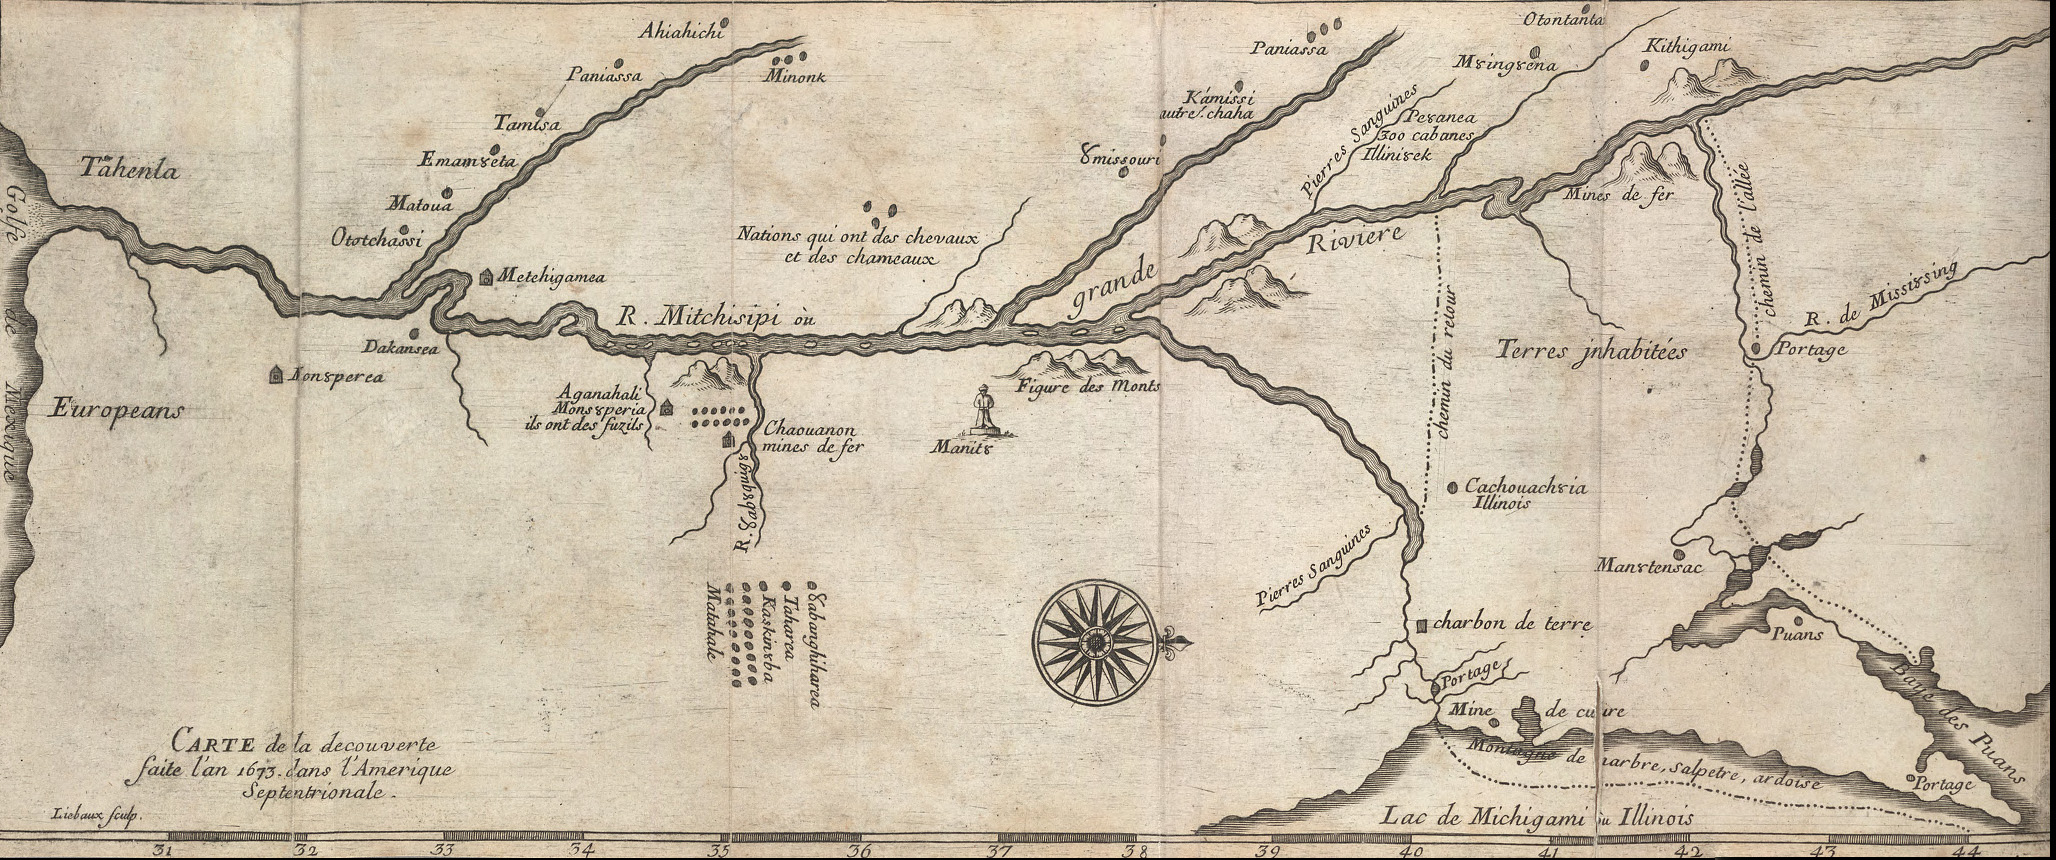 File:Marquette and jolliet map 1681.jpg